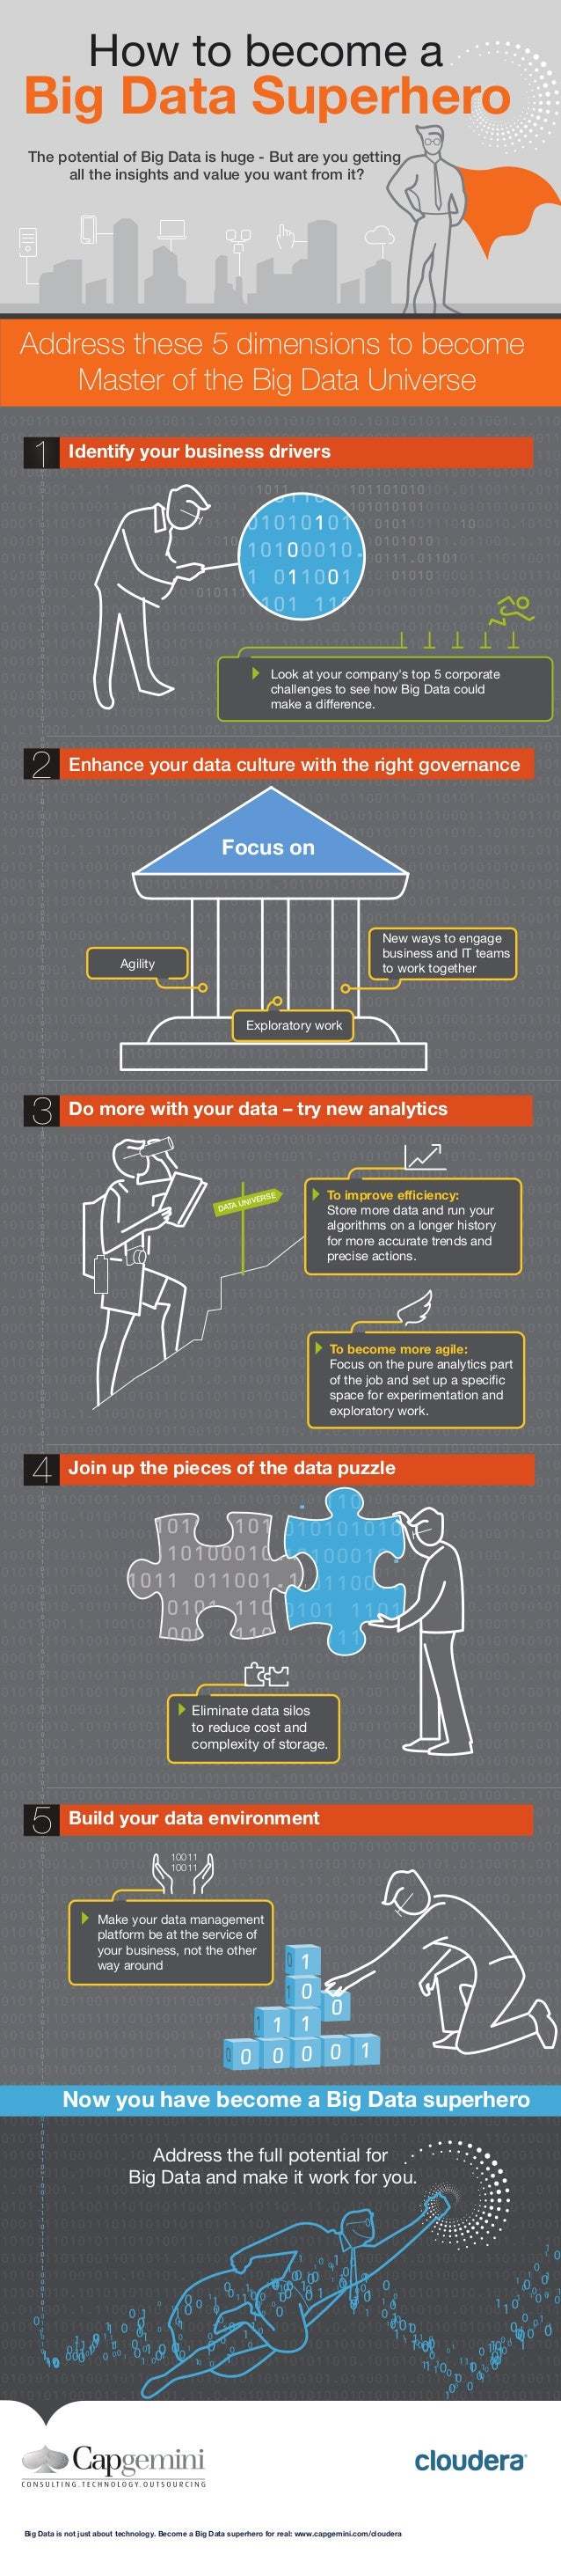 Big Data is not just about technology. Become a Big Data superhero for real: www.capgemini.com/cloudera DATA UNIVERSE To i...